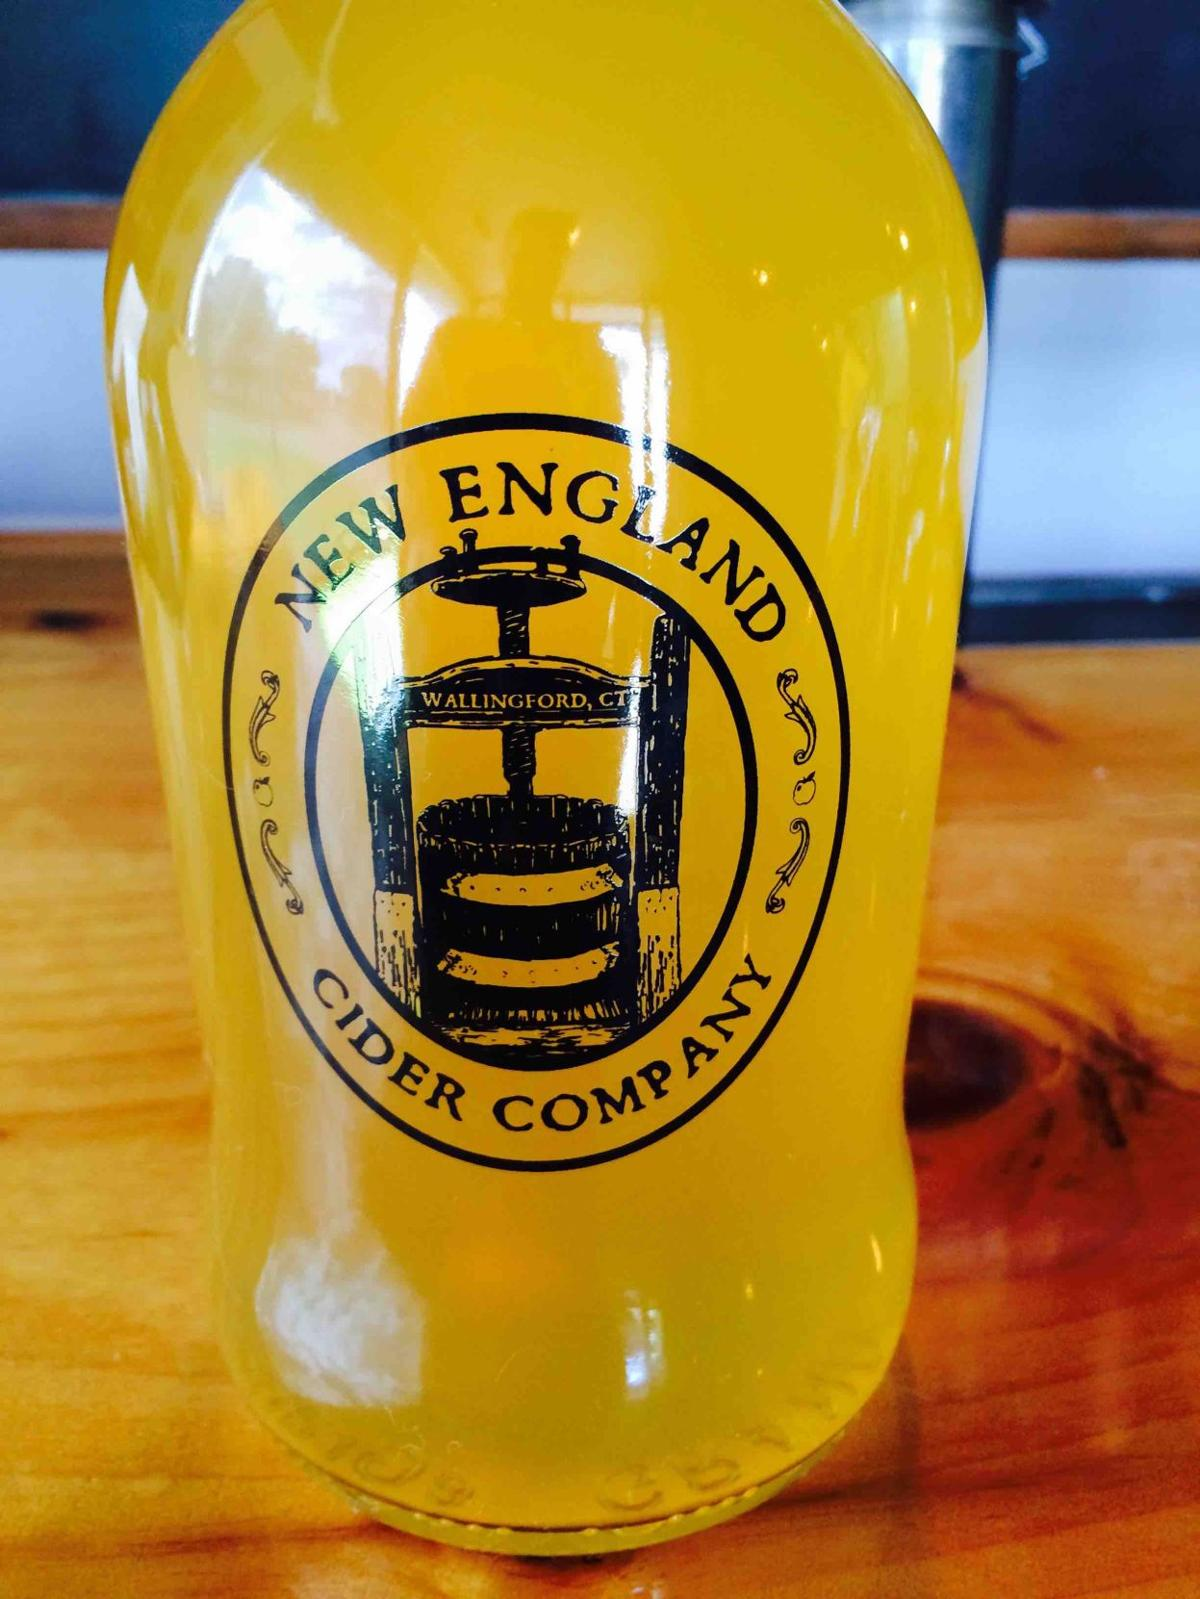 CT's First Craft Beer-Style Cider House Opens in Wallingford